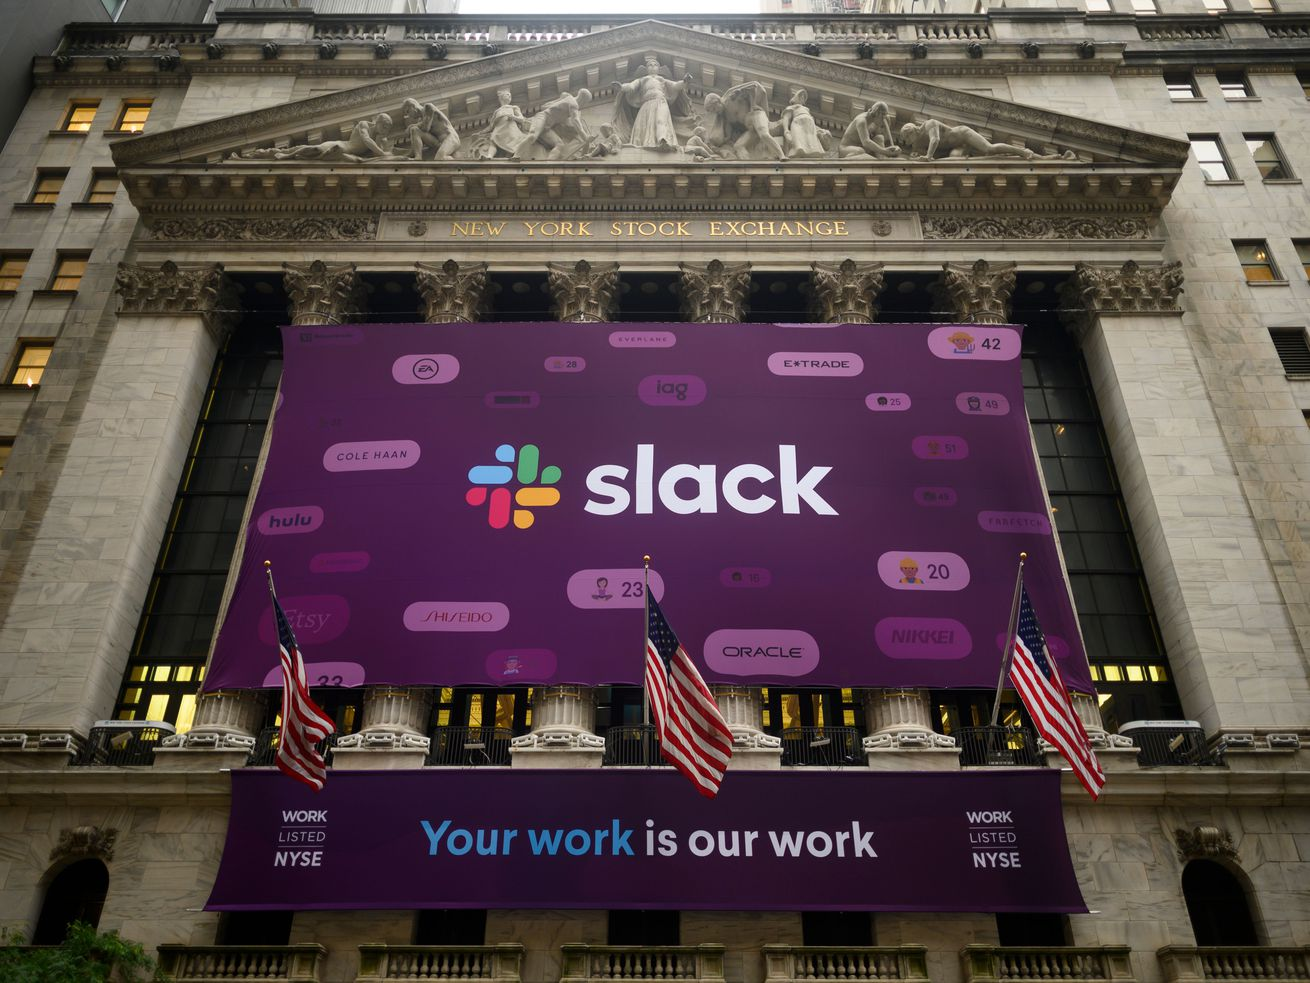 The newly public Slack is having to contend with the much older Microsoft in the workplace communication software market.